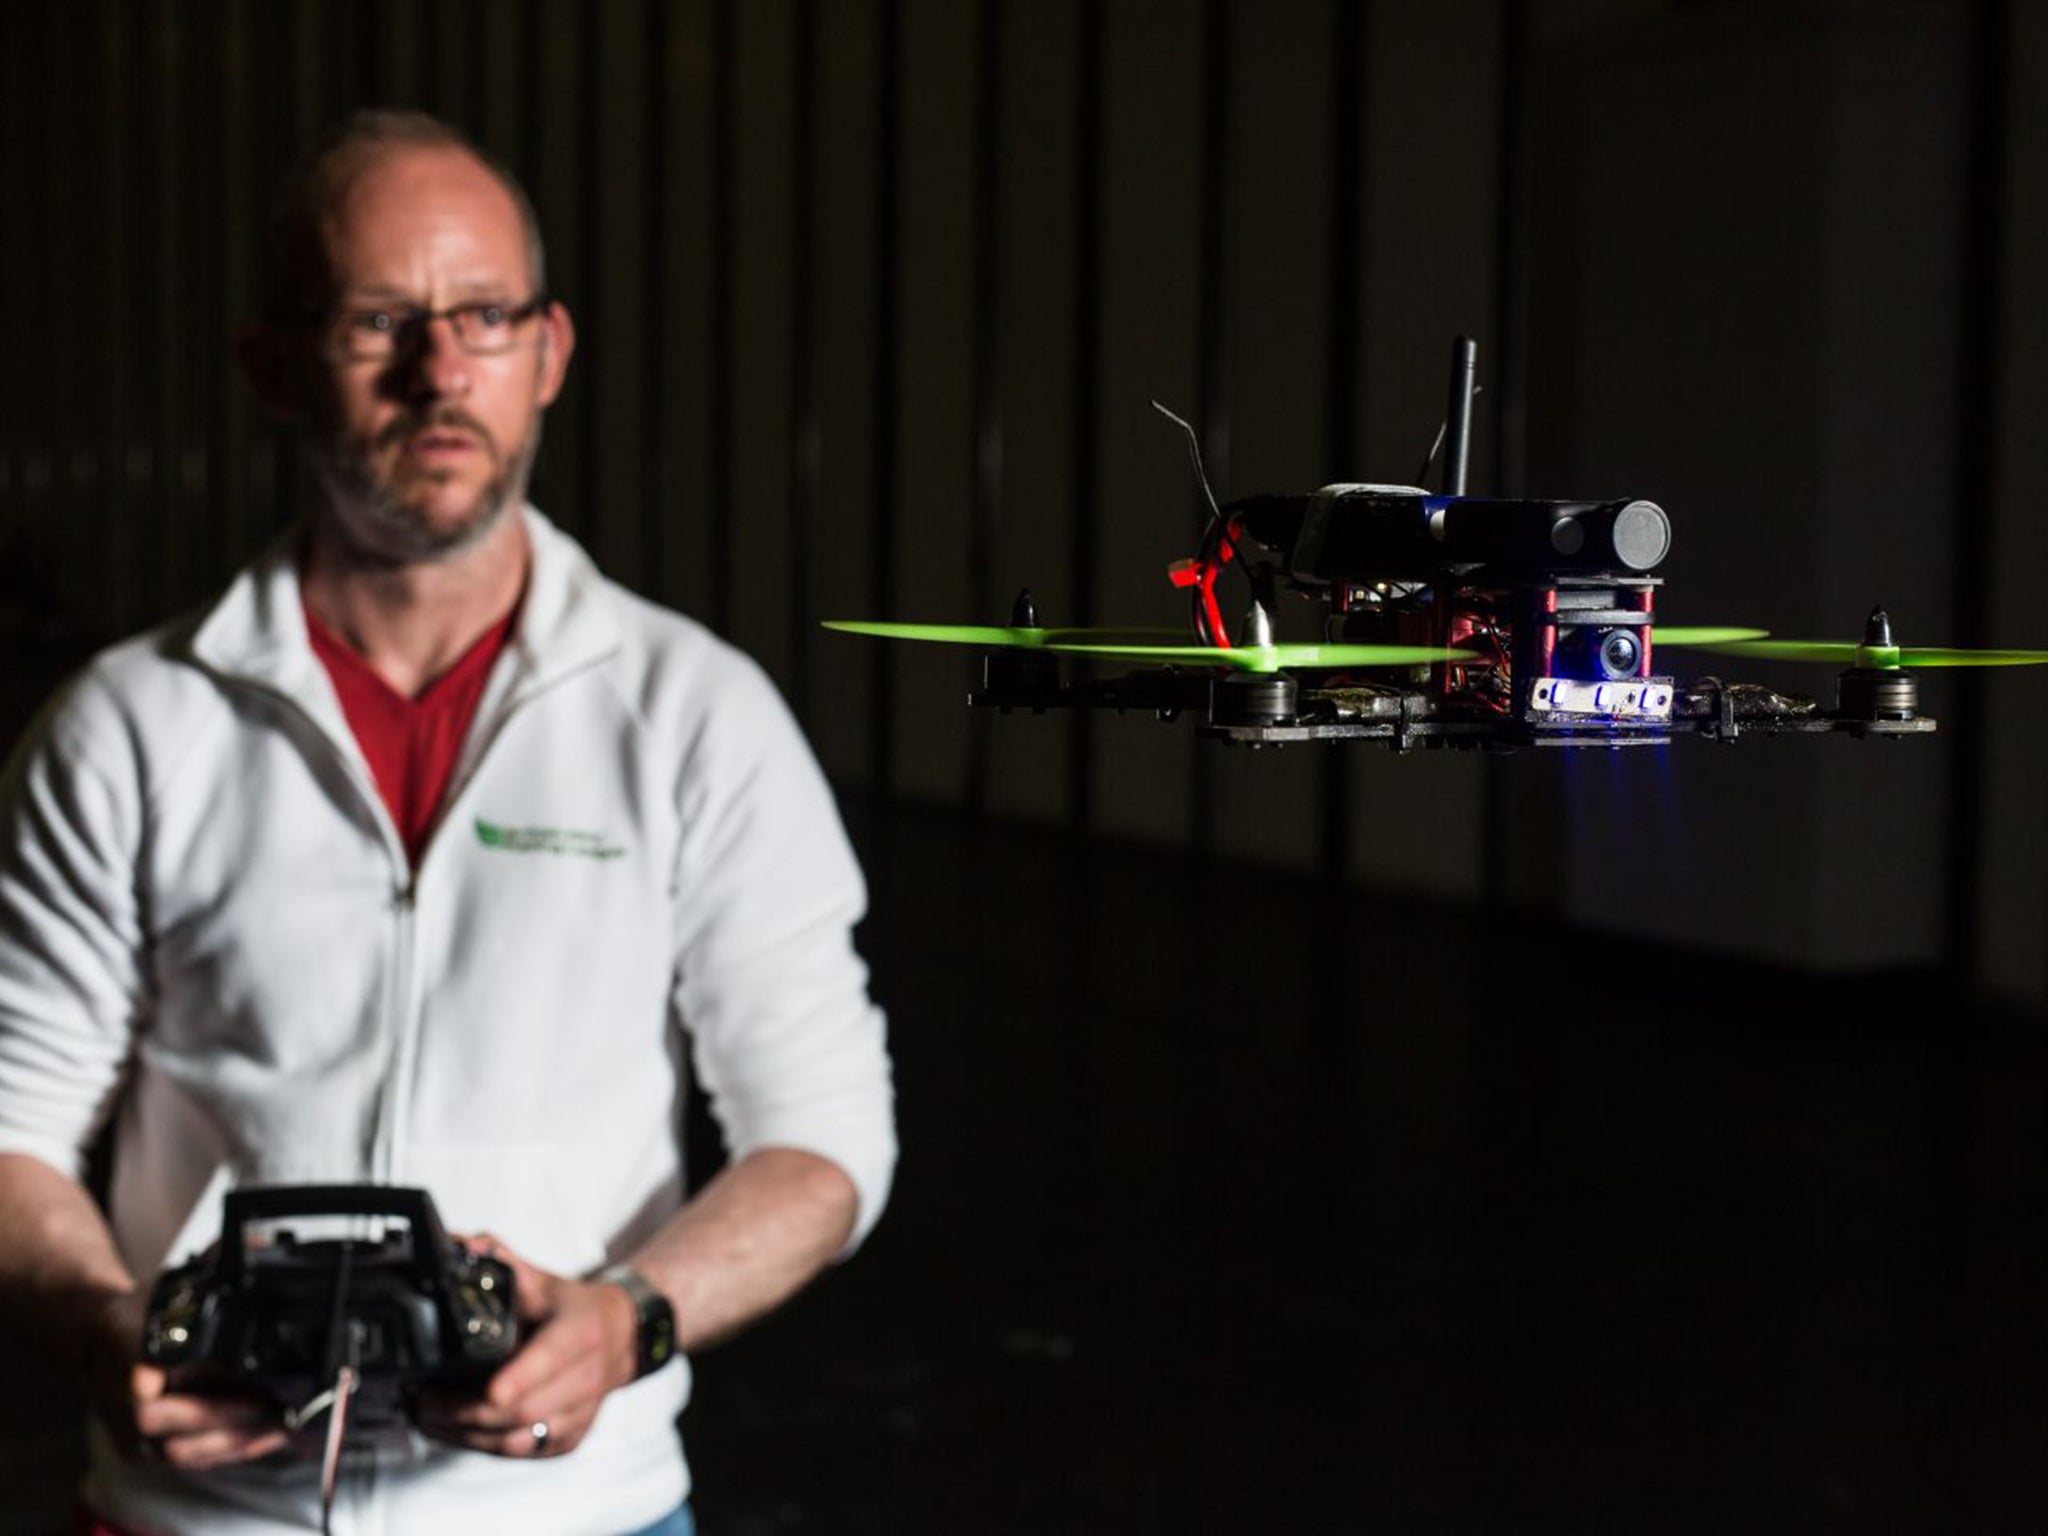 Drone racing: Teenagers are being lured away from screens and outside to fly their aircraft against each other